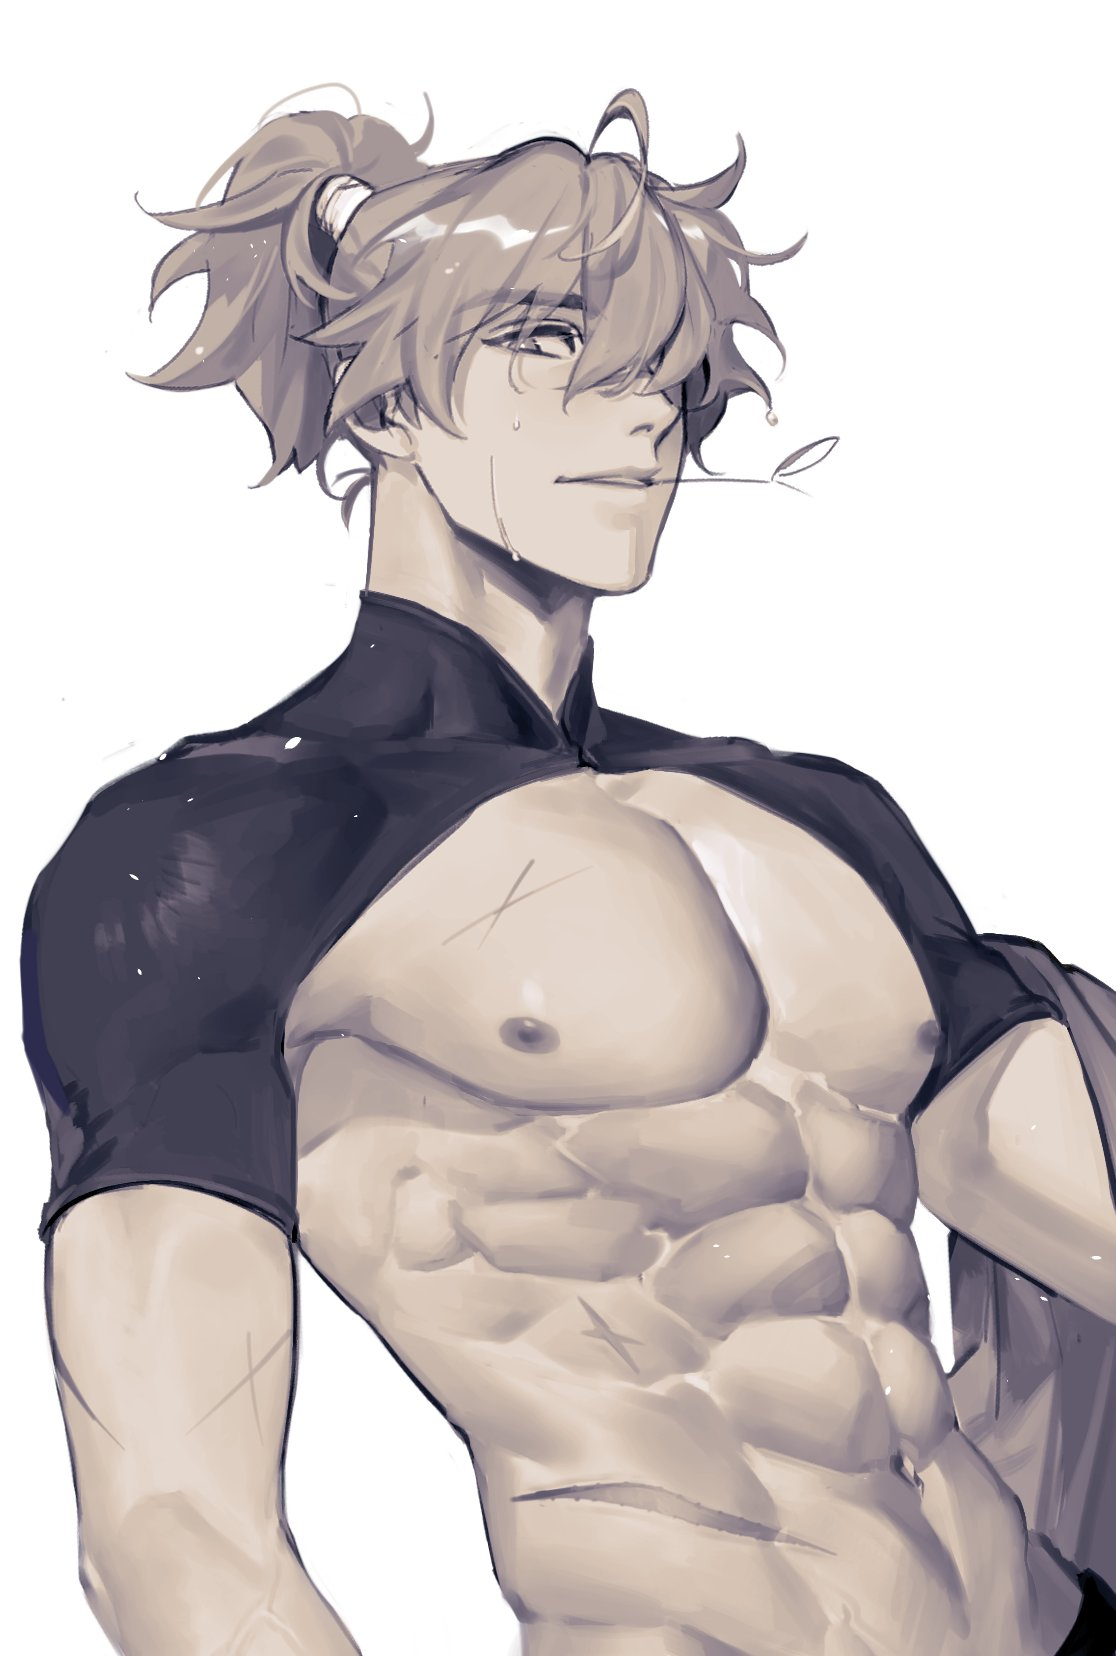 1boy abs ahoge bangs genshin_impact greyscale hair_between_eyes hair_over_one_eye high_ponytail highres k_young03 kazuha's_friend_(genshin_impact) male_focus monochrome mouth_hold muscular muscular_male nipples ponytail scar scar_on_chest shrug_(clothing) simple_background solo sweat upper_body